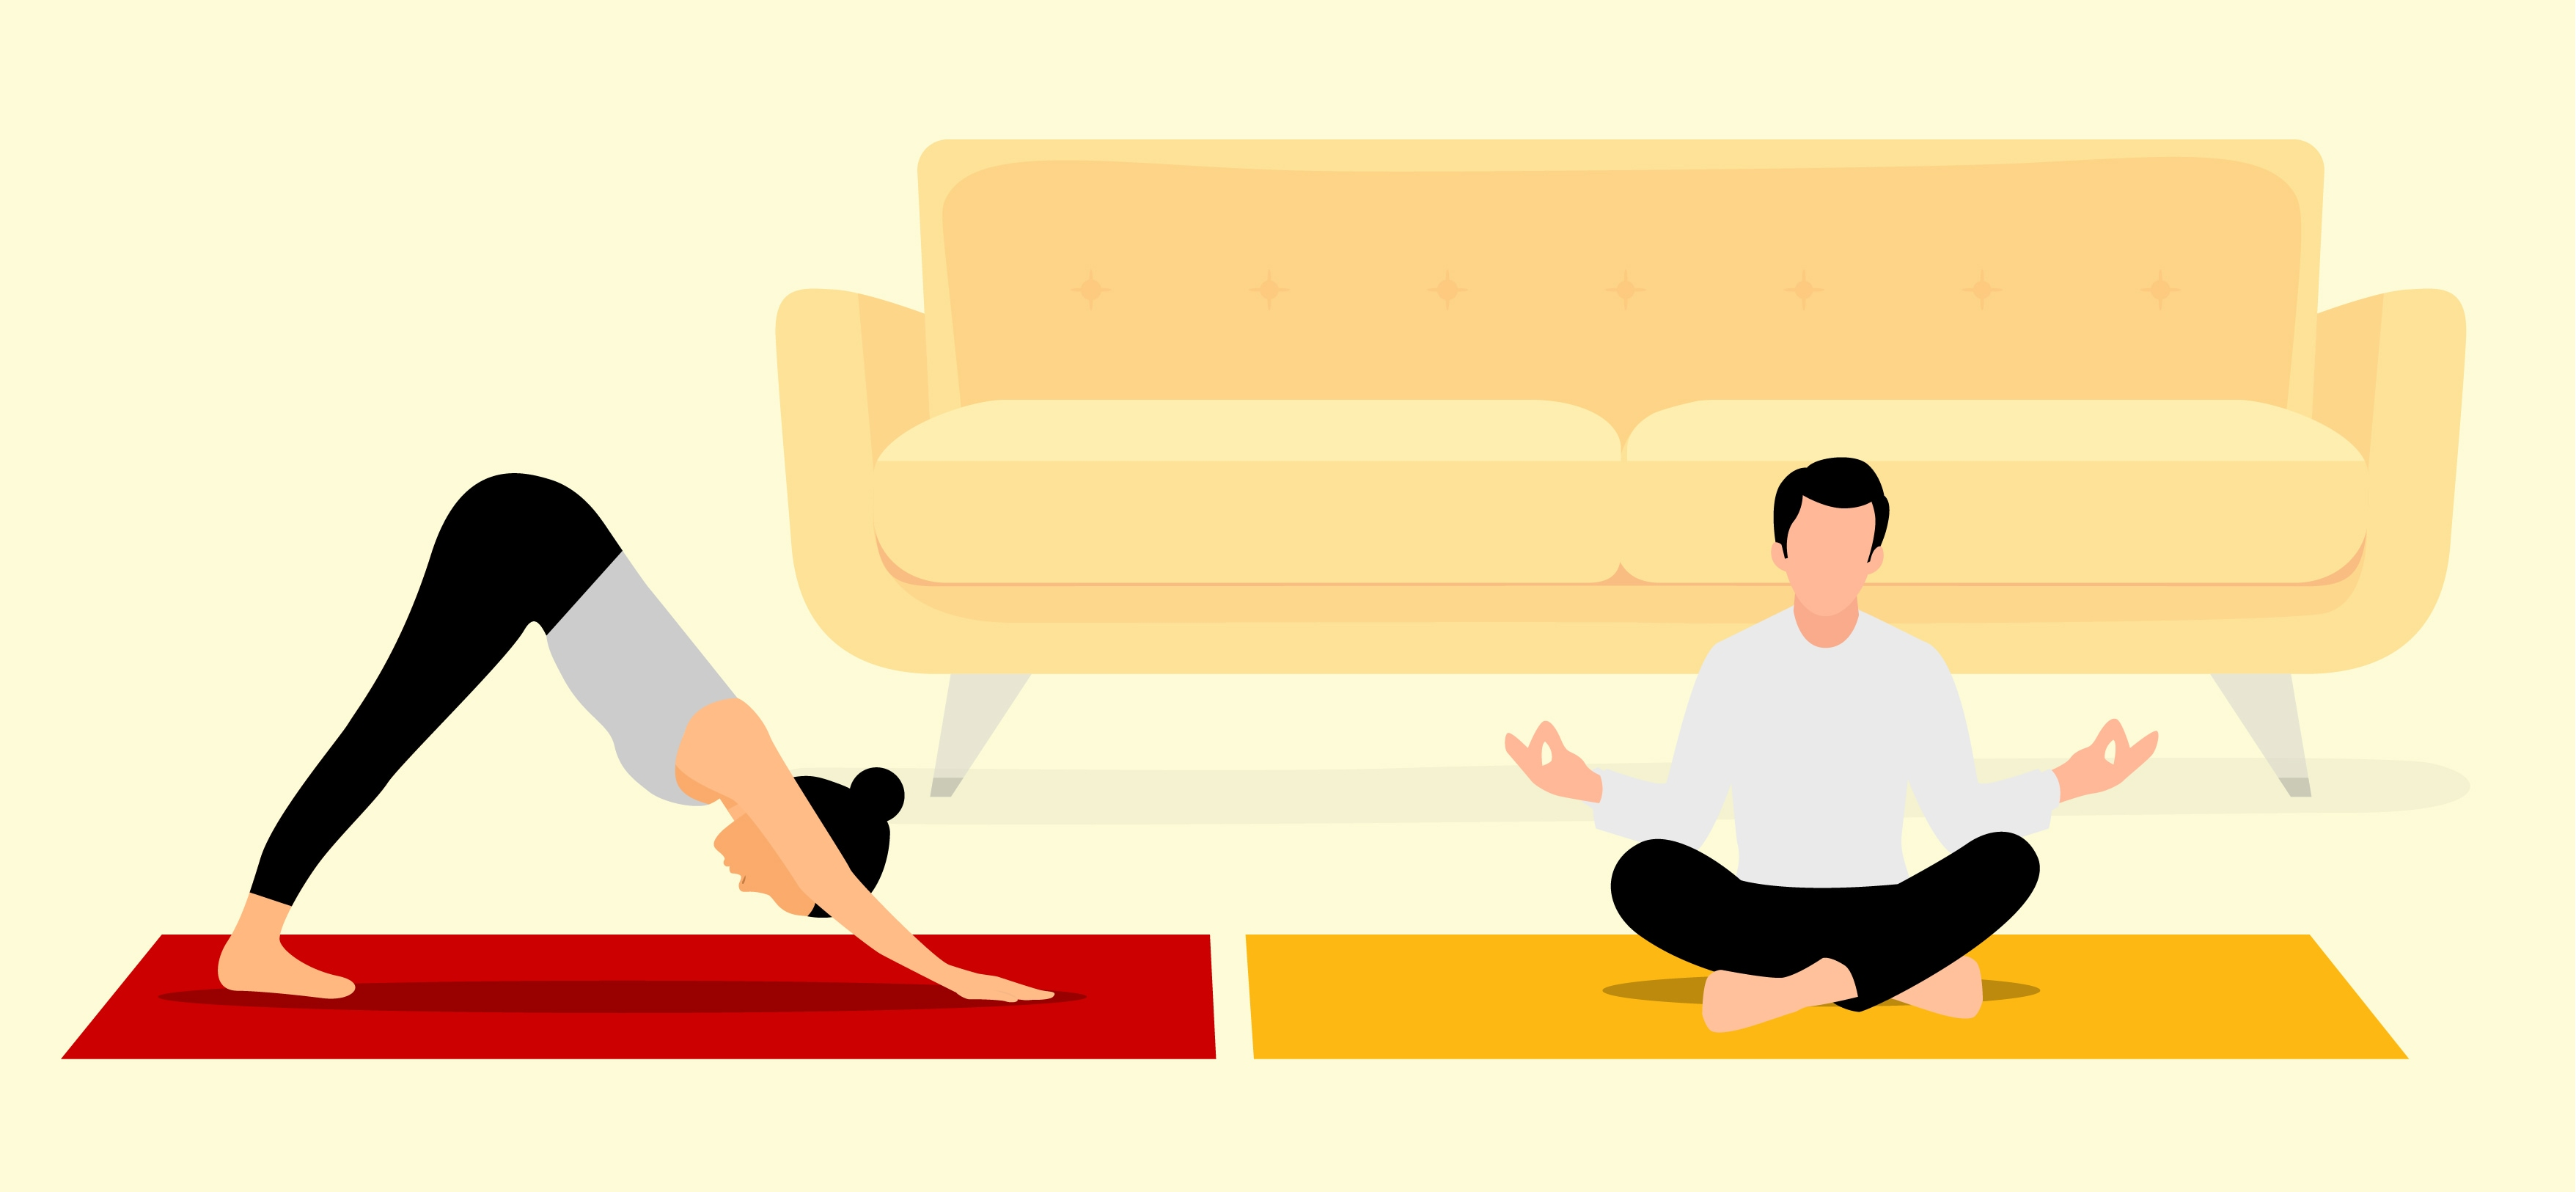 Woman on yoga mat doing a pose and a man on a yoga mat meditating.